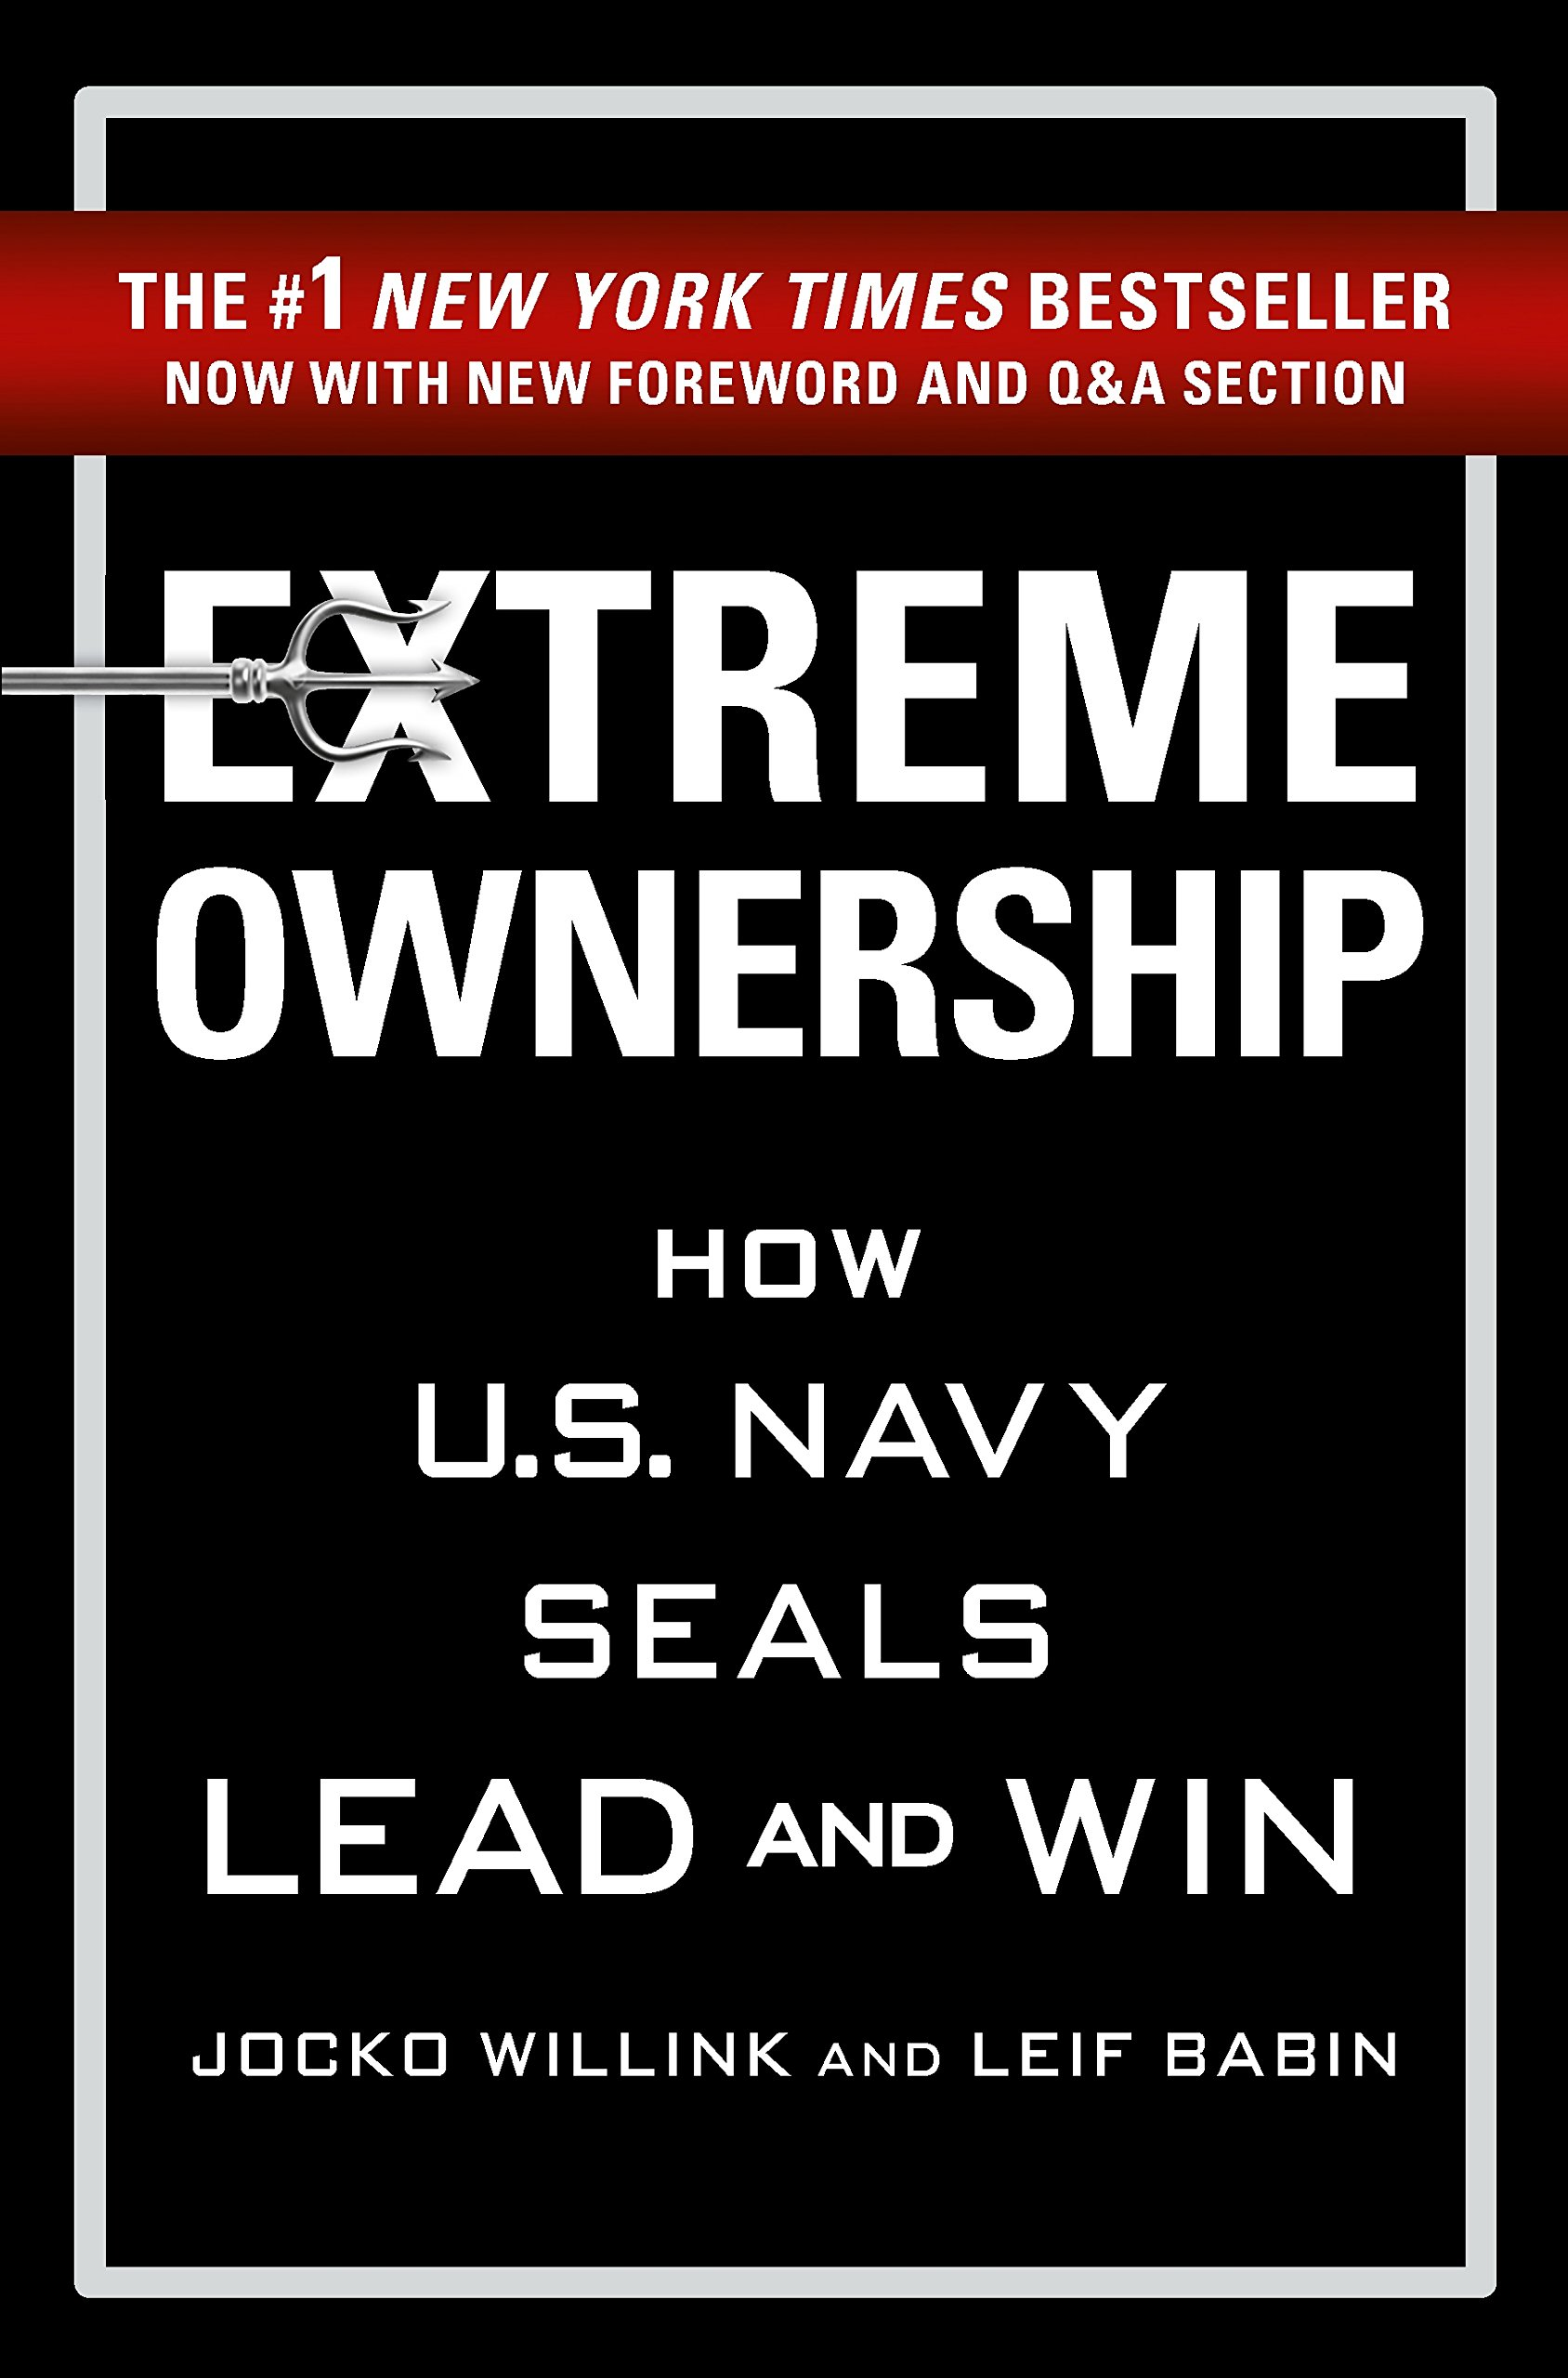 Extreme Ownership: How U.S. Navy Seals Lead and Win - there's a reason why the U.S. military is known for getting things done, and getting them done really well. Jocko Willink and Leif Babin share some of their personal war stories (which are fascinating) to illustrate 12 of the key principles they contribute to their success in the SEALs. then they explain how businesses who have integrated the principles have gone on to win, too, which is great for anyone wanting to up-level their professional lives this coming up year.if you have ever had trouble sticking with your resolutions, this book is for you. Willink and Babin know discipline inside and out, which means they know that there's a different way for everyone to practice it (just like how people learn differently).not only will you be inspired to follow through with your goals, but you'll feel eager to reach your highest potential, exceed expectations, and help others do the same, too.